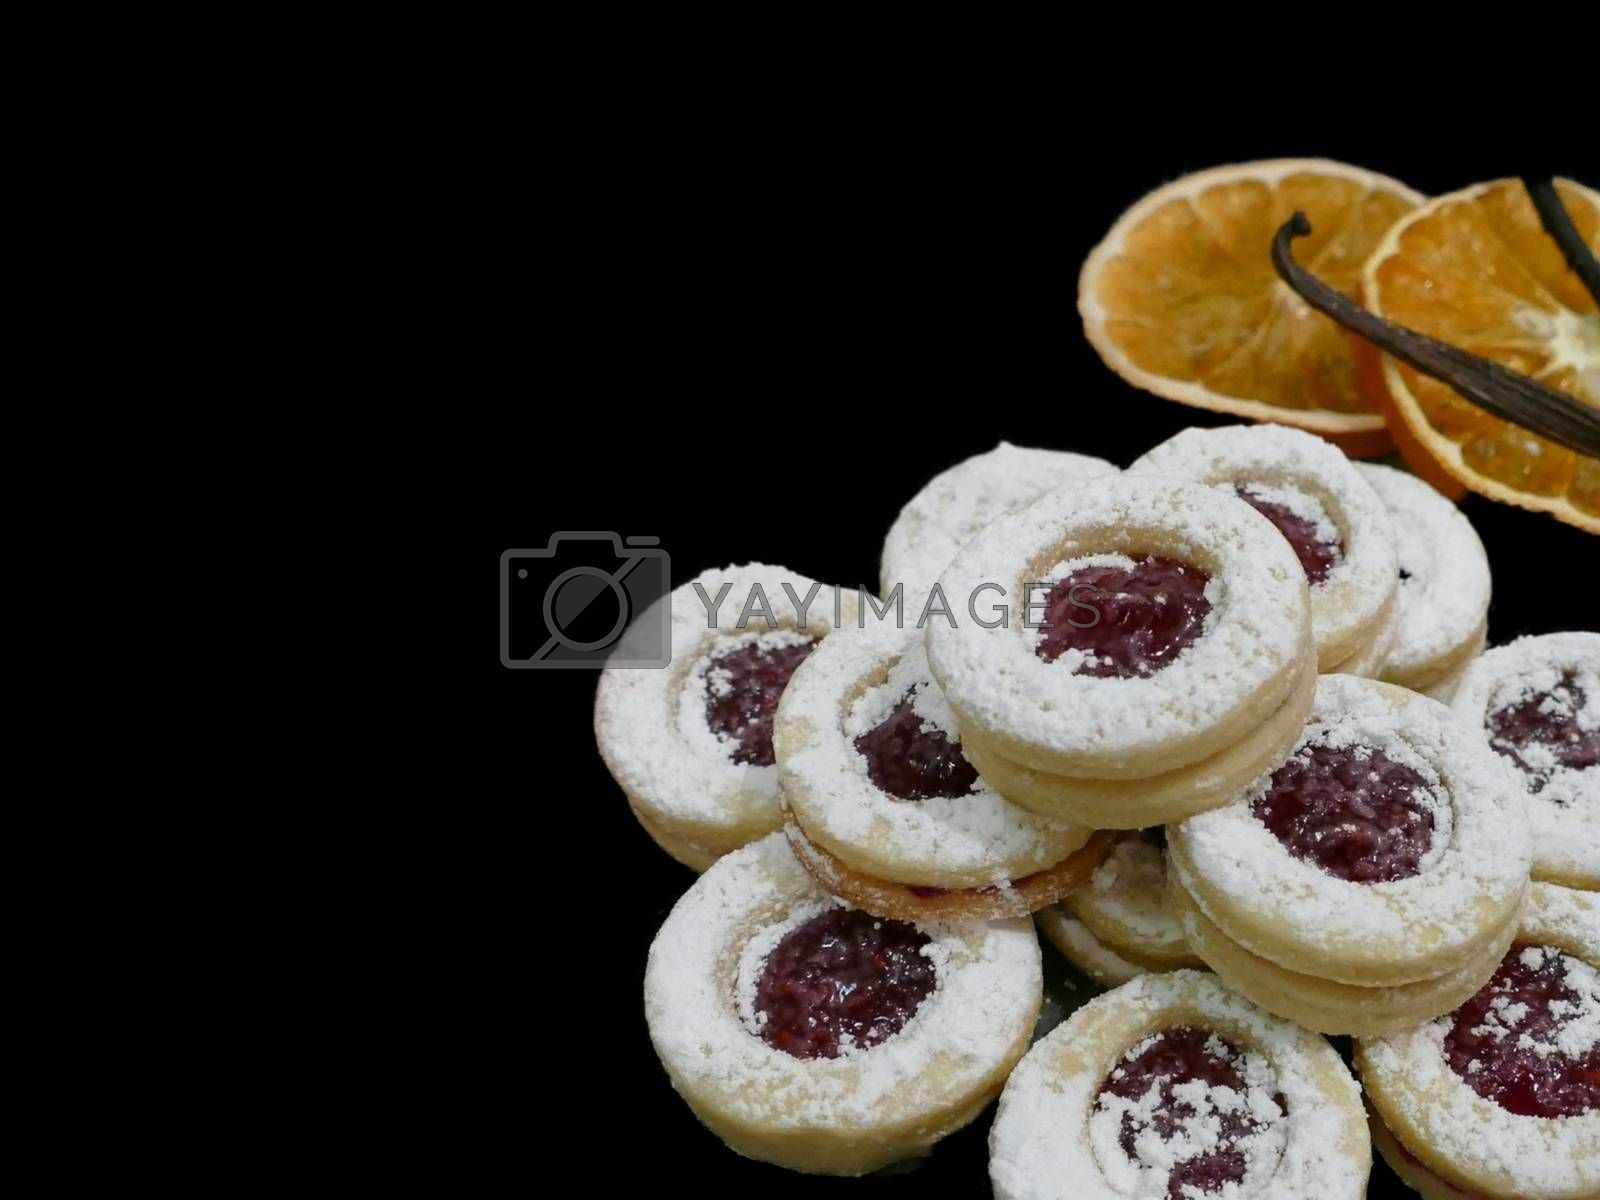 Royalty free image of Strawberry Christmas biscuits and orange slices with cinnamon sticks on a black background by balage941